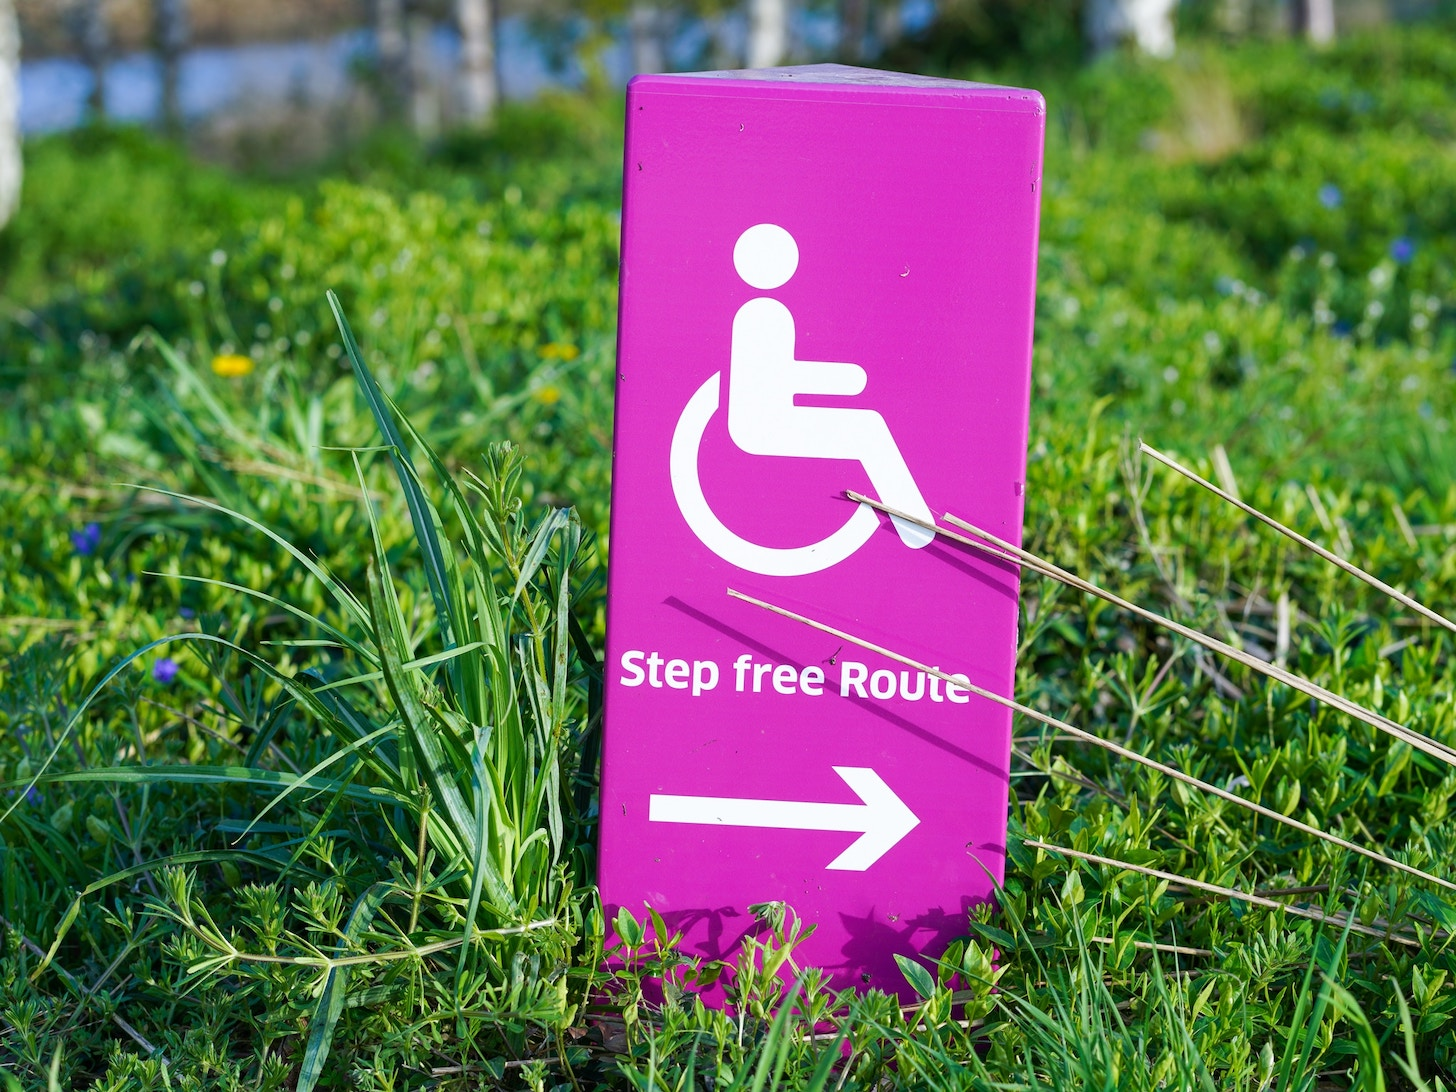 'There is great potential for hoteliers in the accessibility market'. Photo: Unsplash